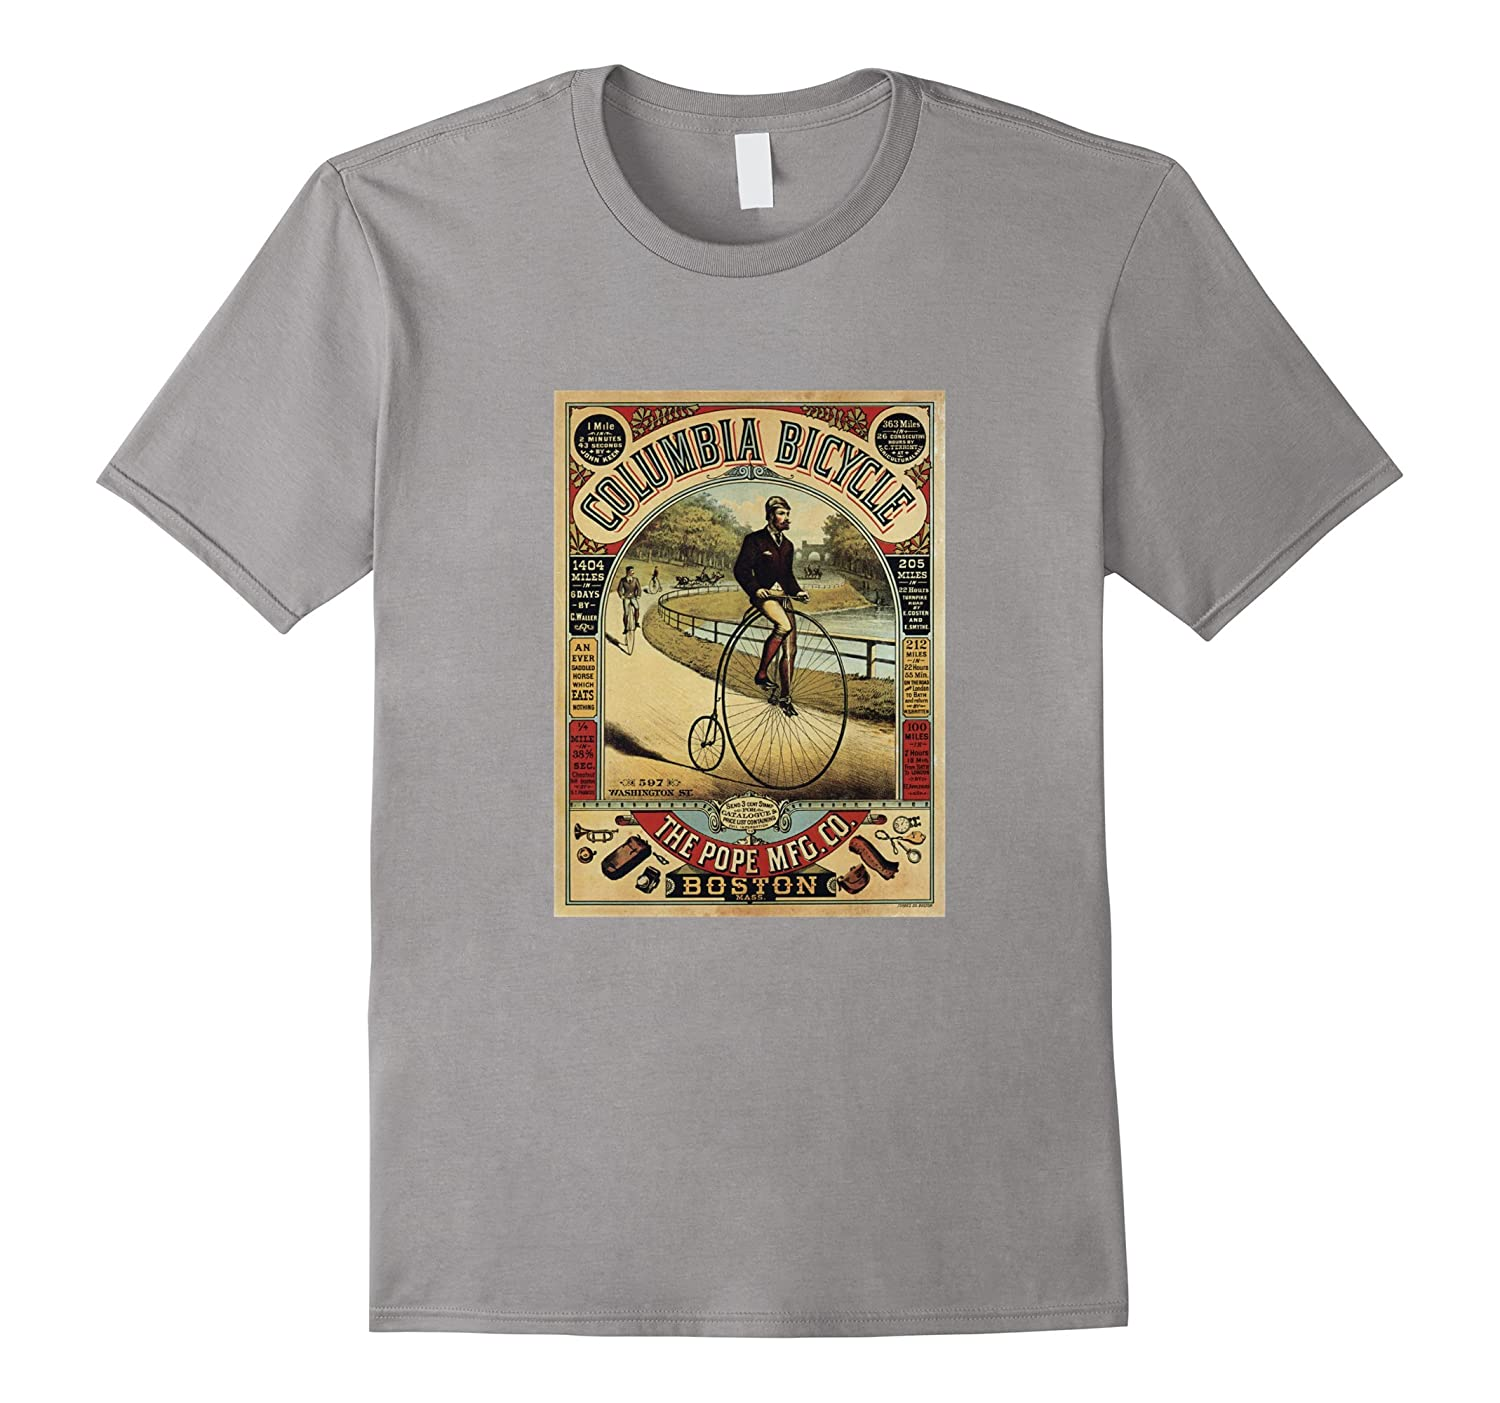 a9fcdb3e6fa Columbia Bicycle Advertising Vintage Poster T-shirt Pope MFG-BN ...